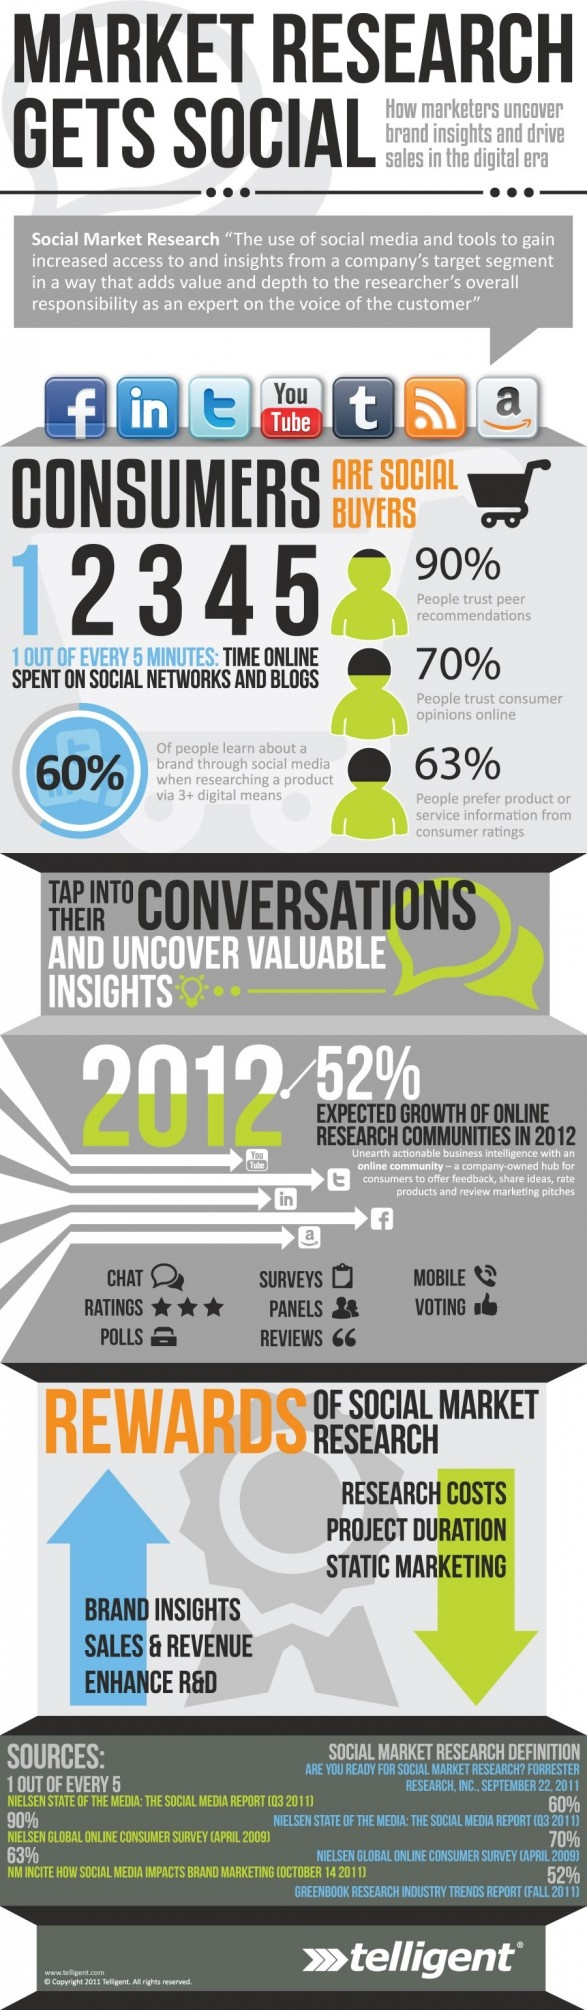 How Marketers uncover brand insights and drive sales in the digital era